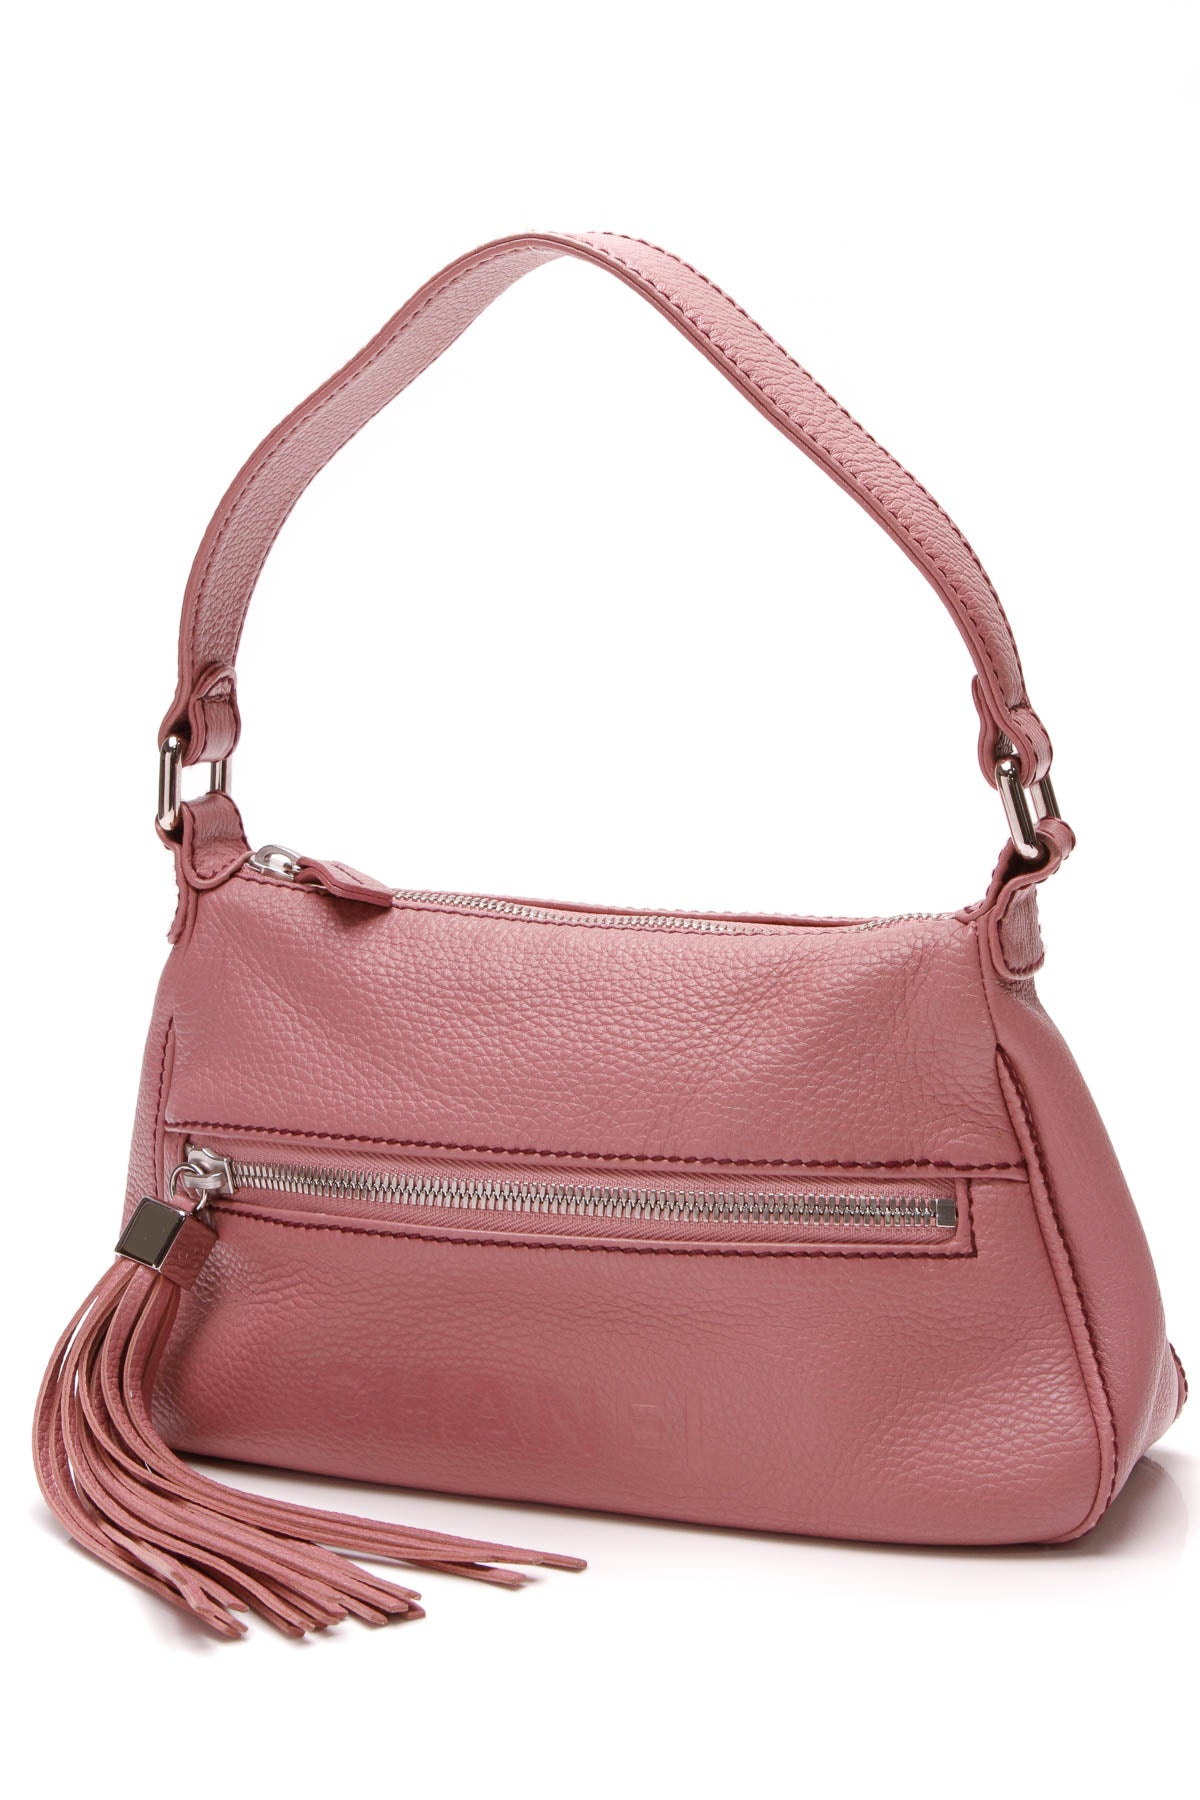 d7c812381cea Chanel LAX Tassel Shoulder Bag - Dusty Pink – Couture USA